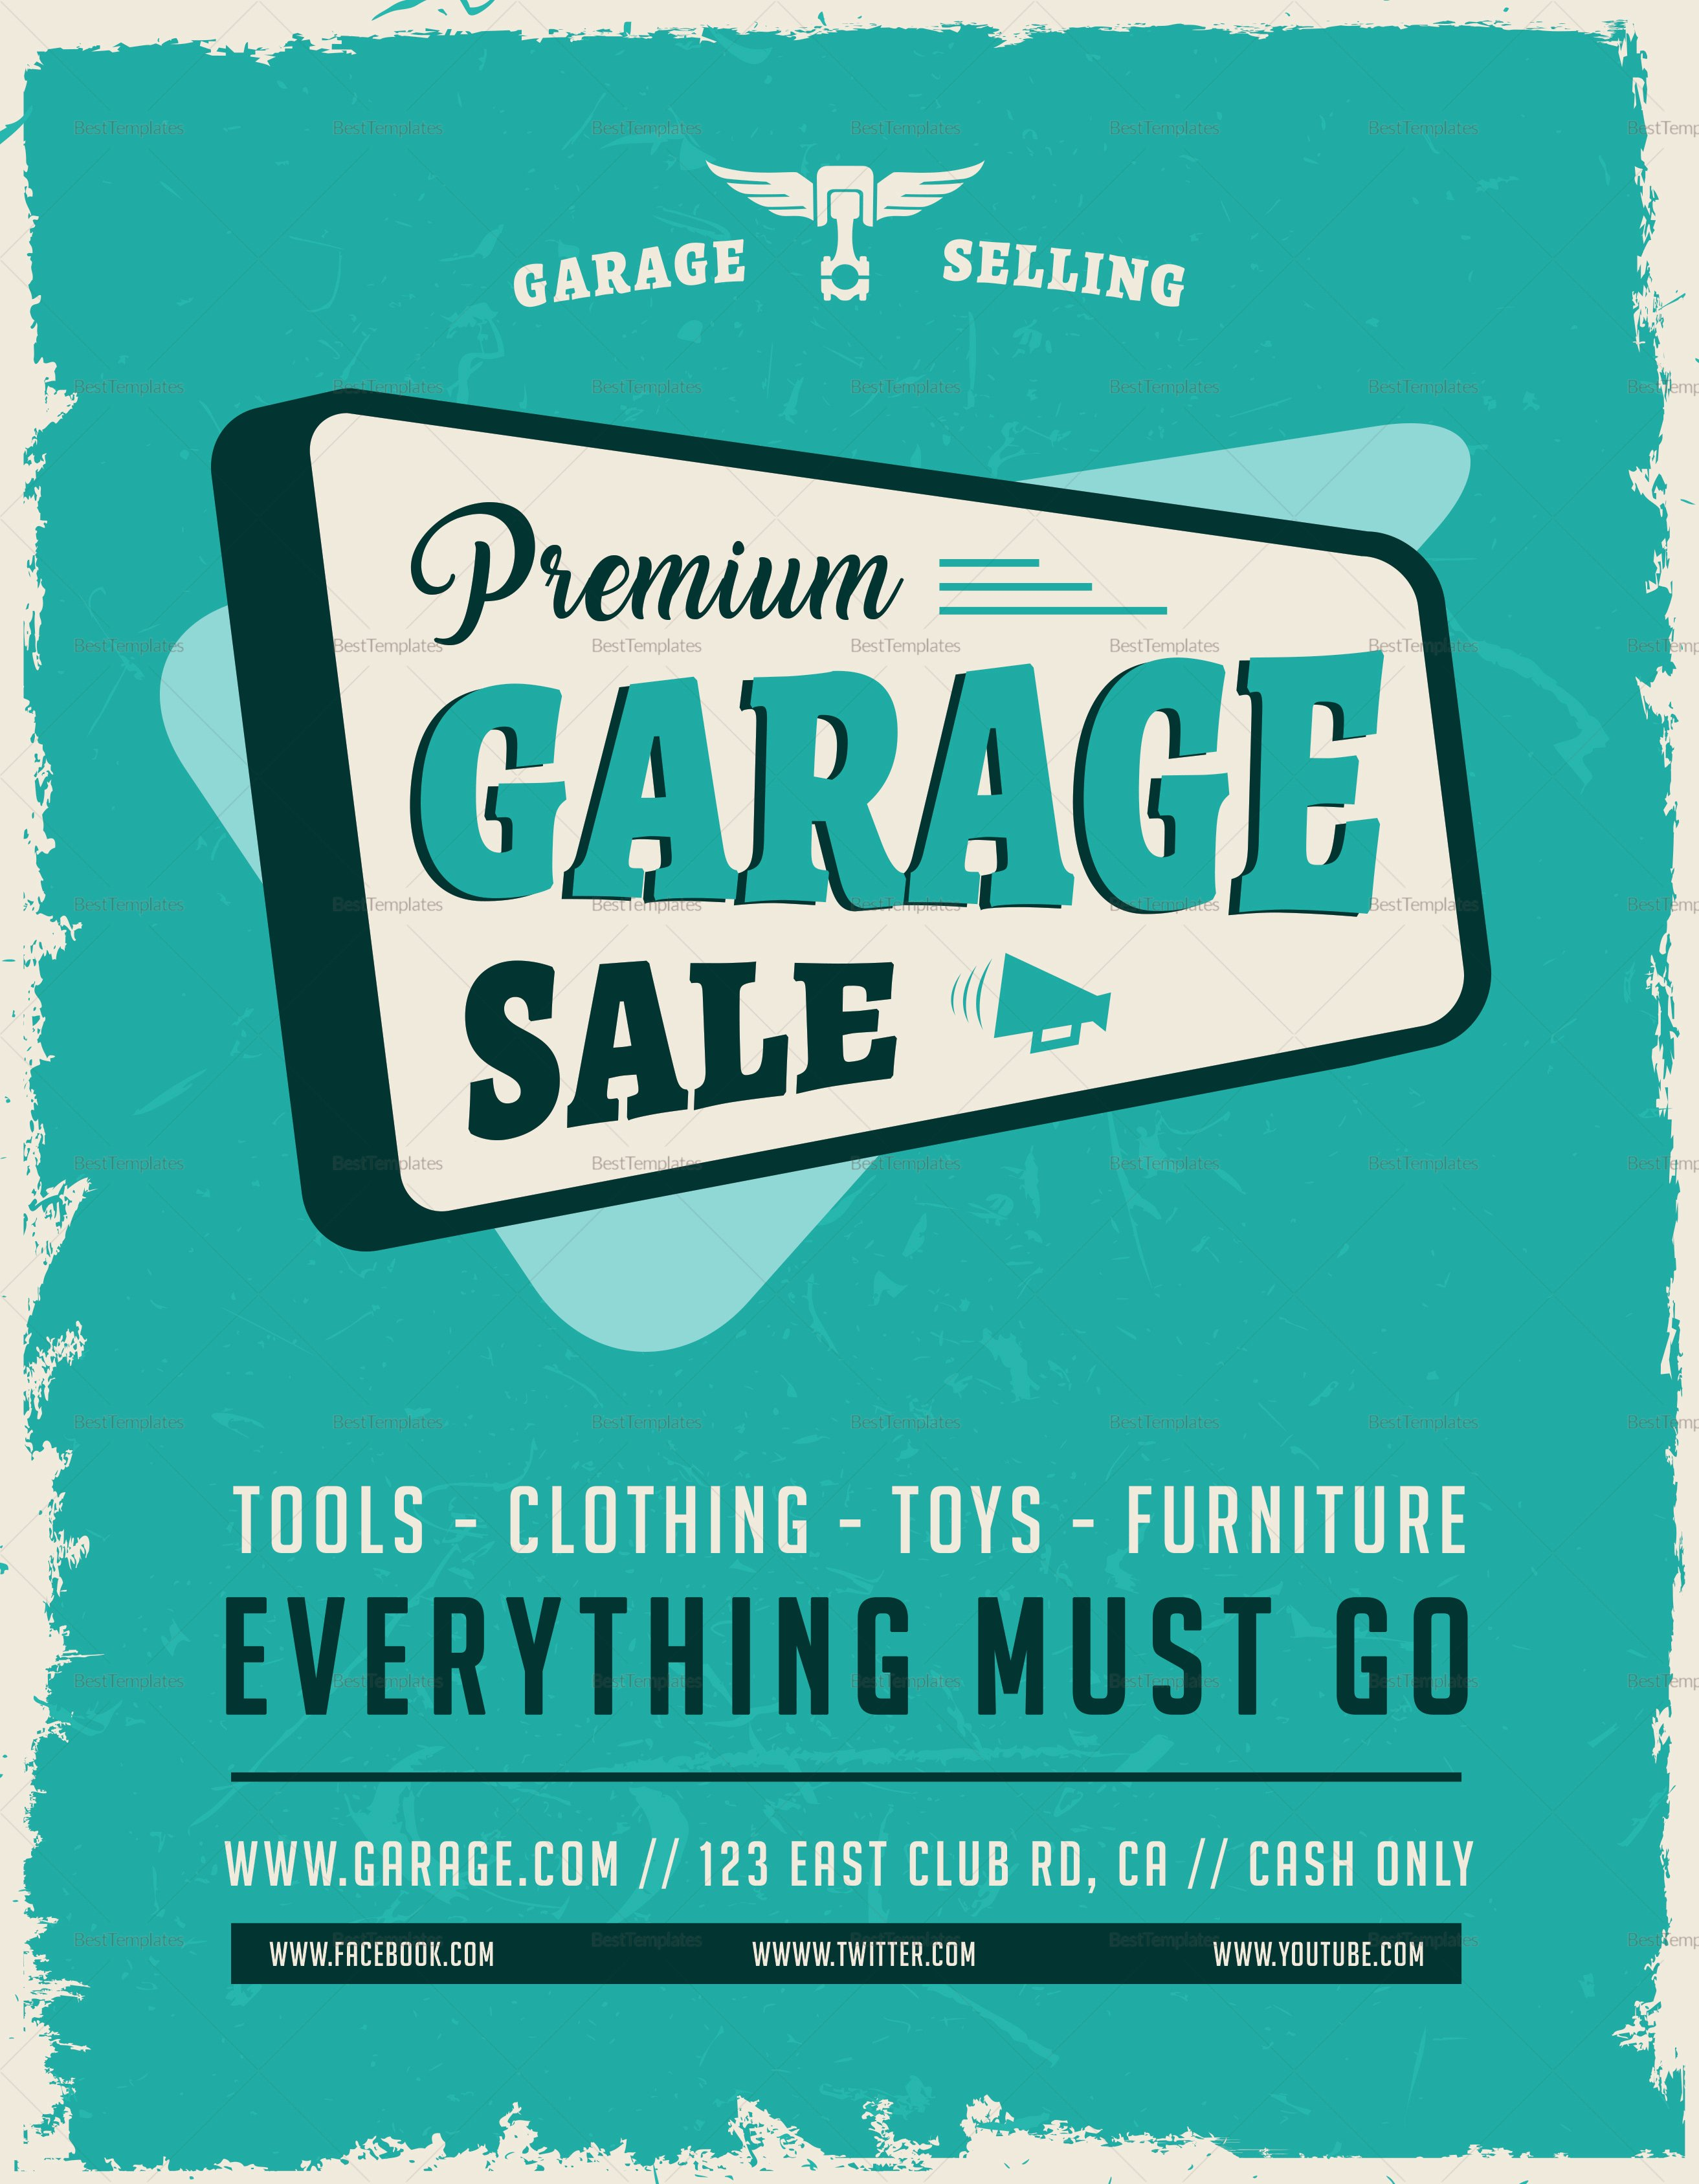 Yard Sale Flyer Template Fresh Garage Sale Flyer Design Template In Word Psd Publisher Illustrator